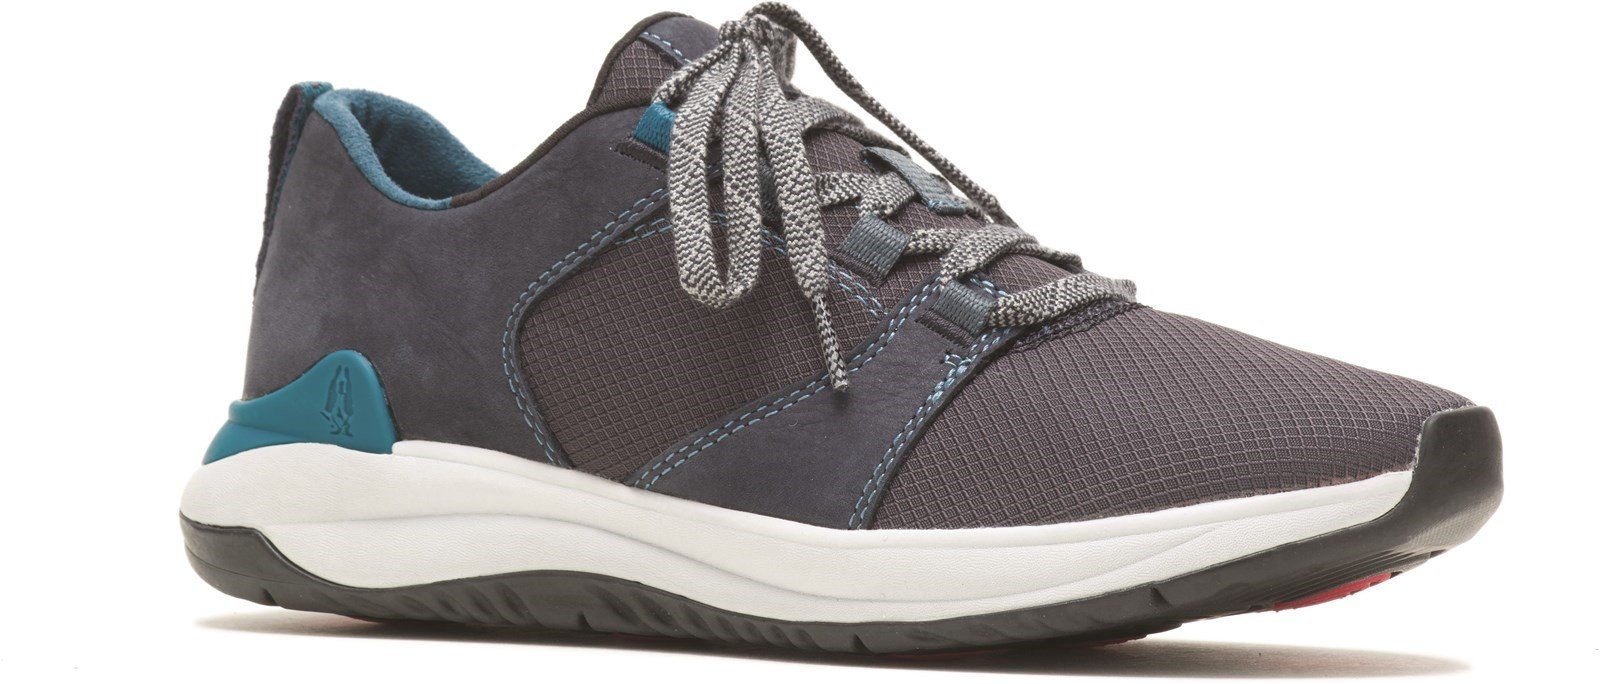 Hush Puppies Women's Basil Ladies Lace Trainer Various Colours 31287 - Navy 3